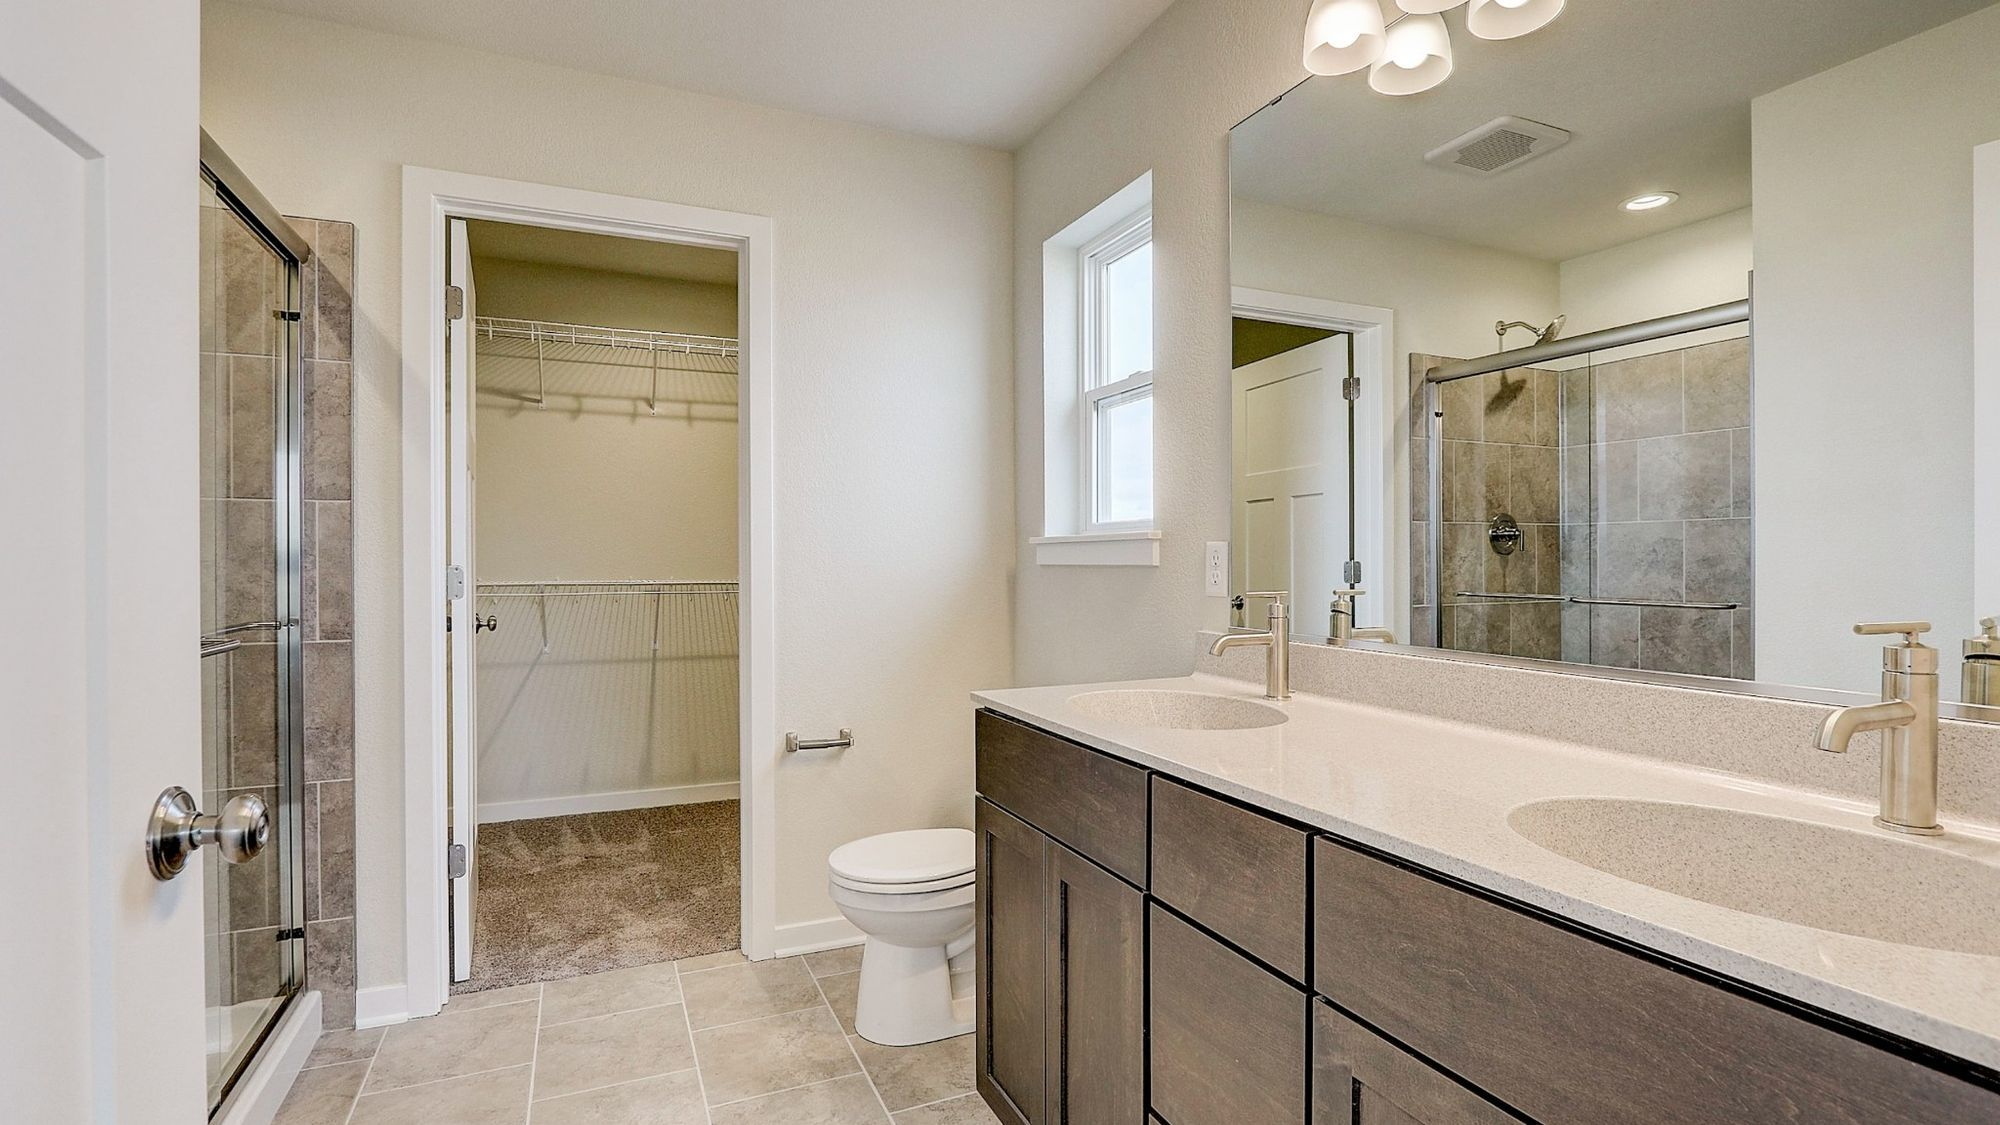 Bathroom featured in The Bridgeport By Harbor Homes in Washington-Fond du Lac, WI